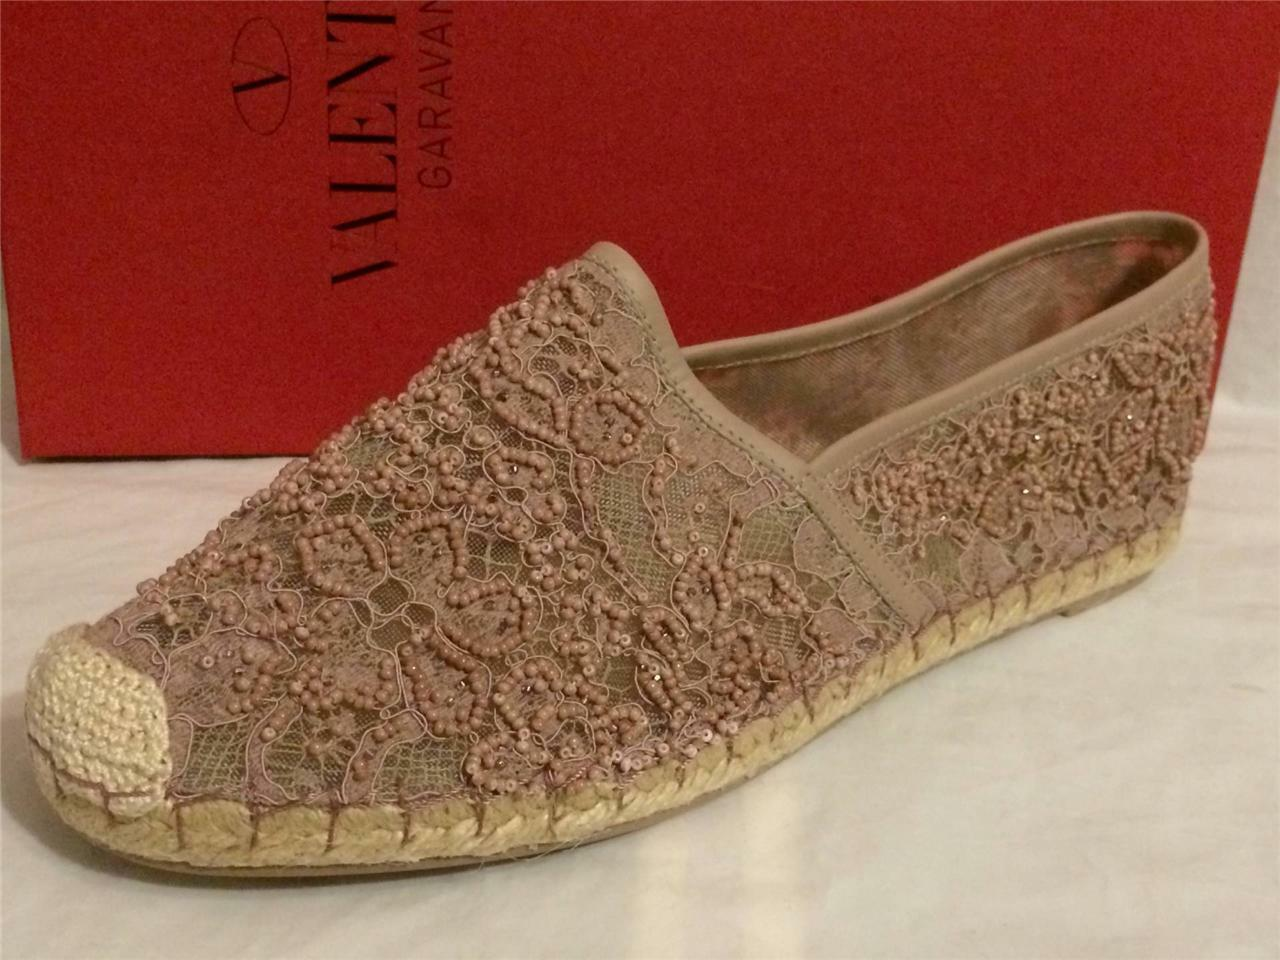 Valentino Beaded Beaded Beaded Embellished Nude Floral Print Lace Flat Espadrille shoes  995 1b70c1